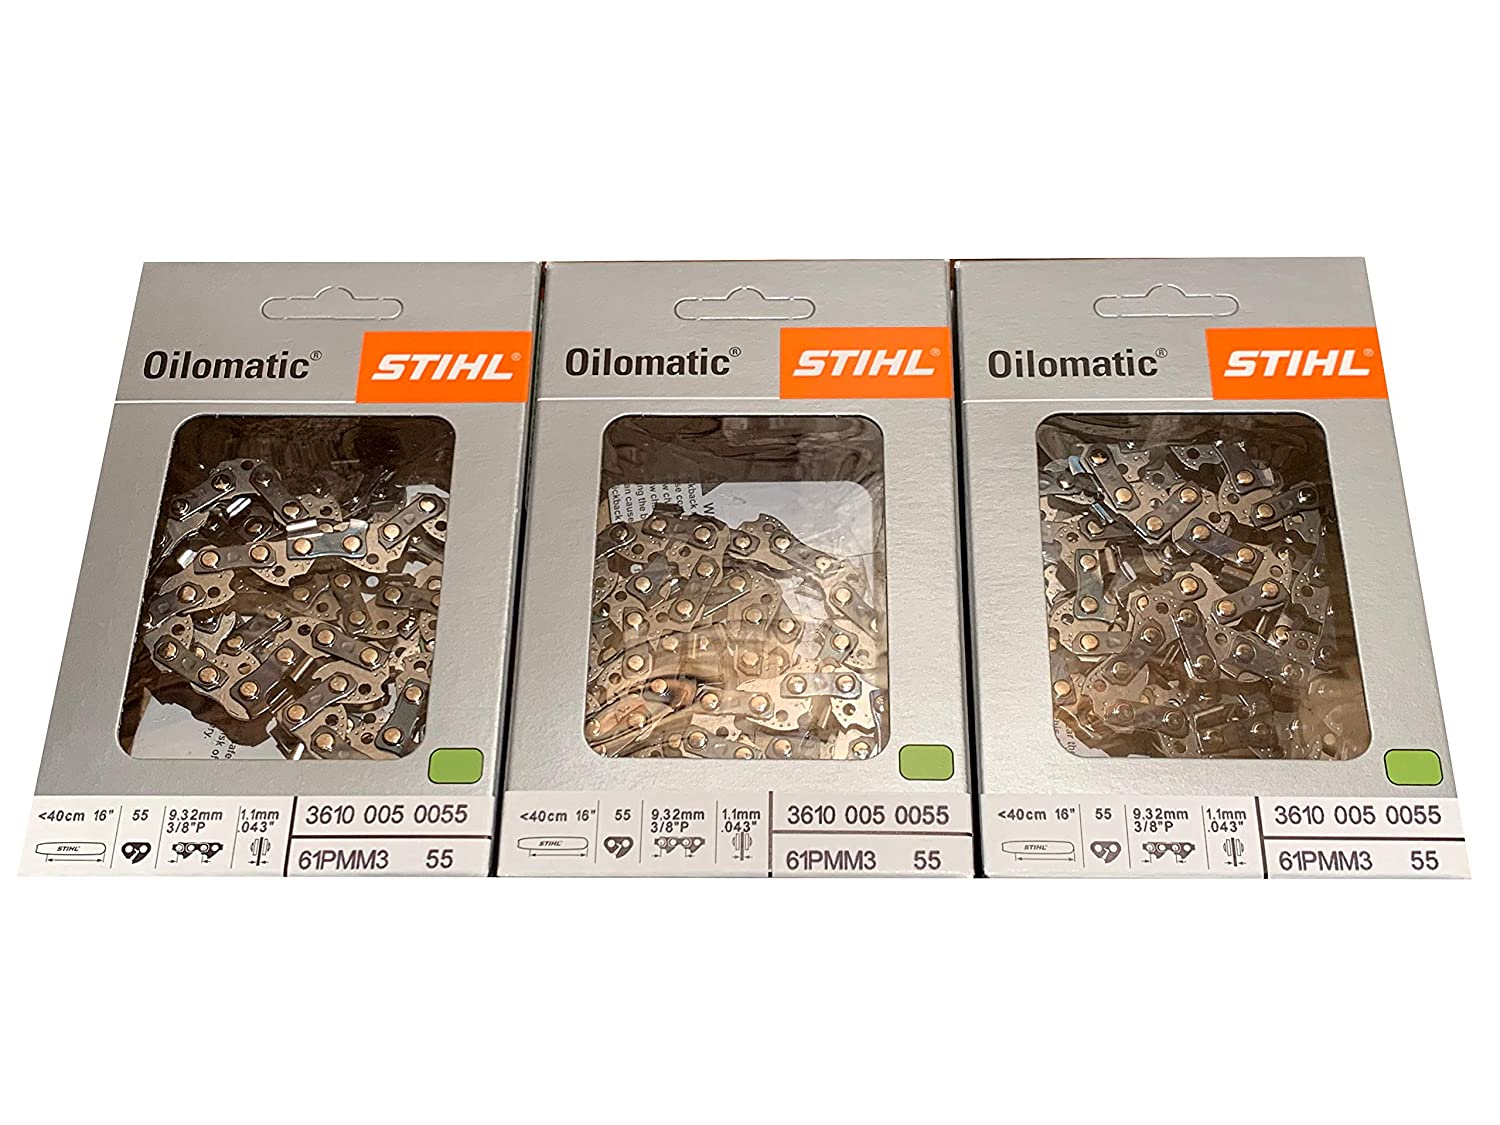 "3 pk) 16"" Stihl Chainsaw Picco Micro Oilomatic Saw Chain 61PMM355 3/8p .043 55dl"